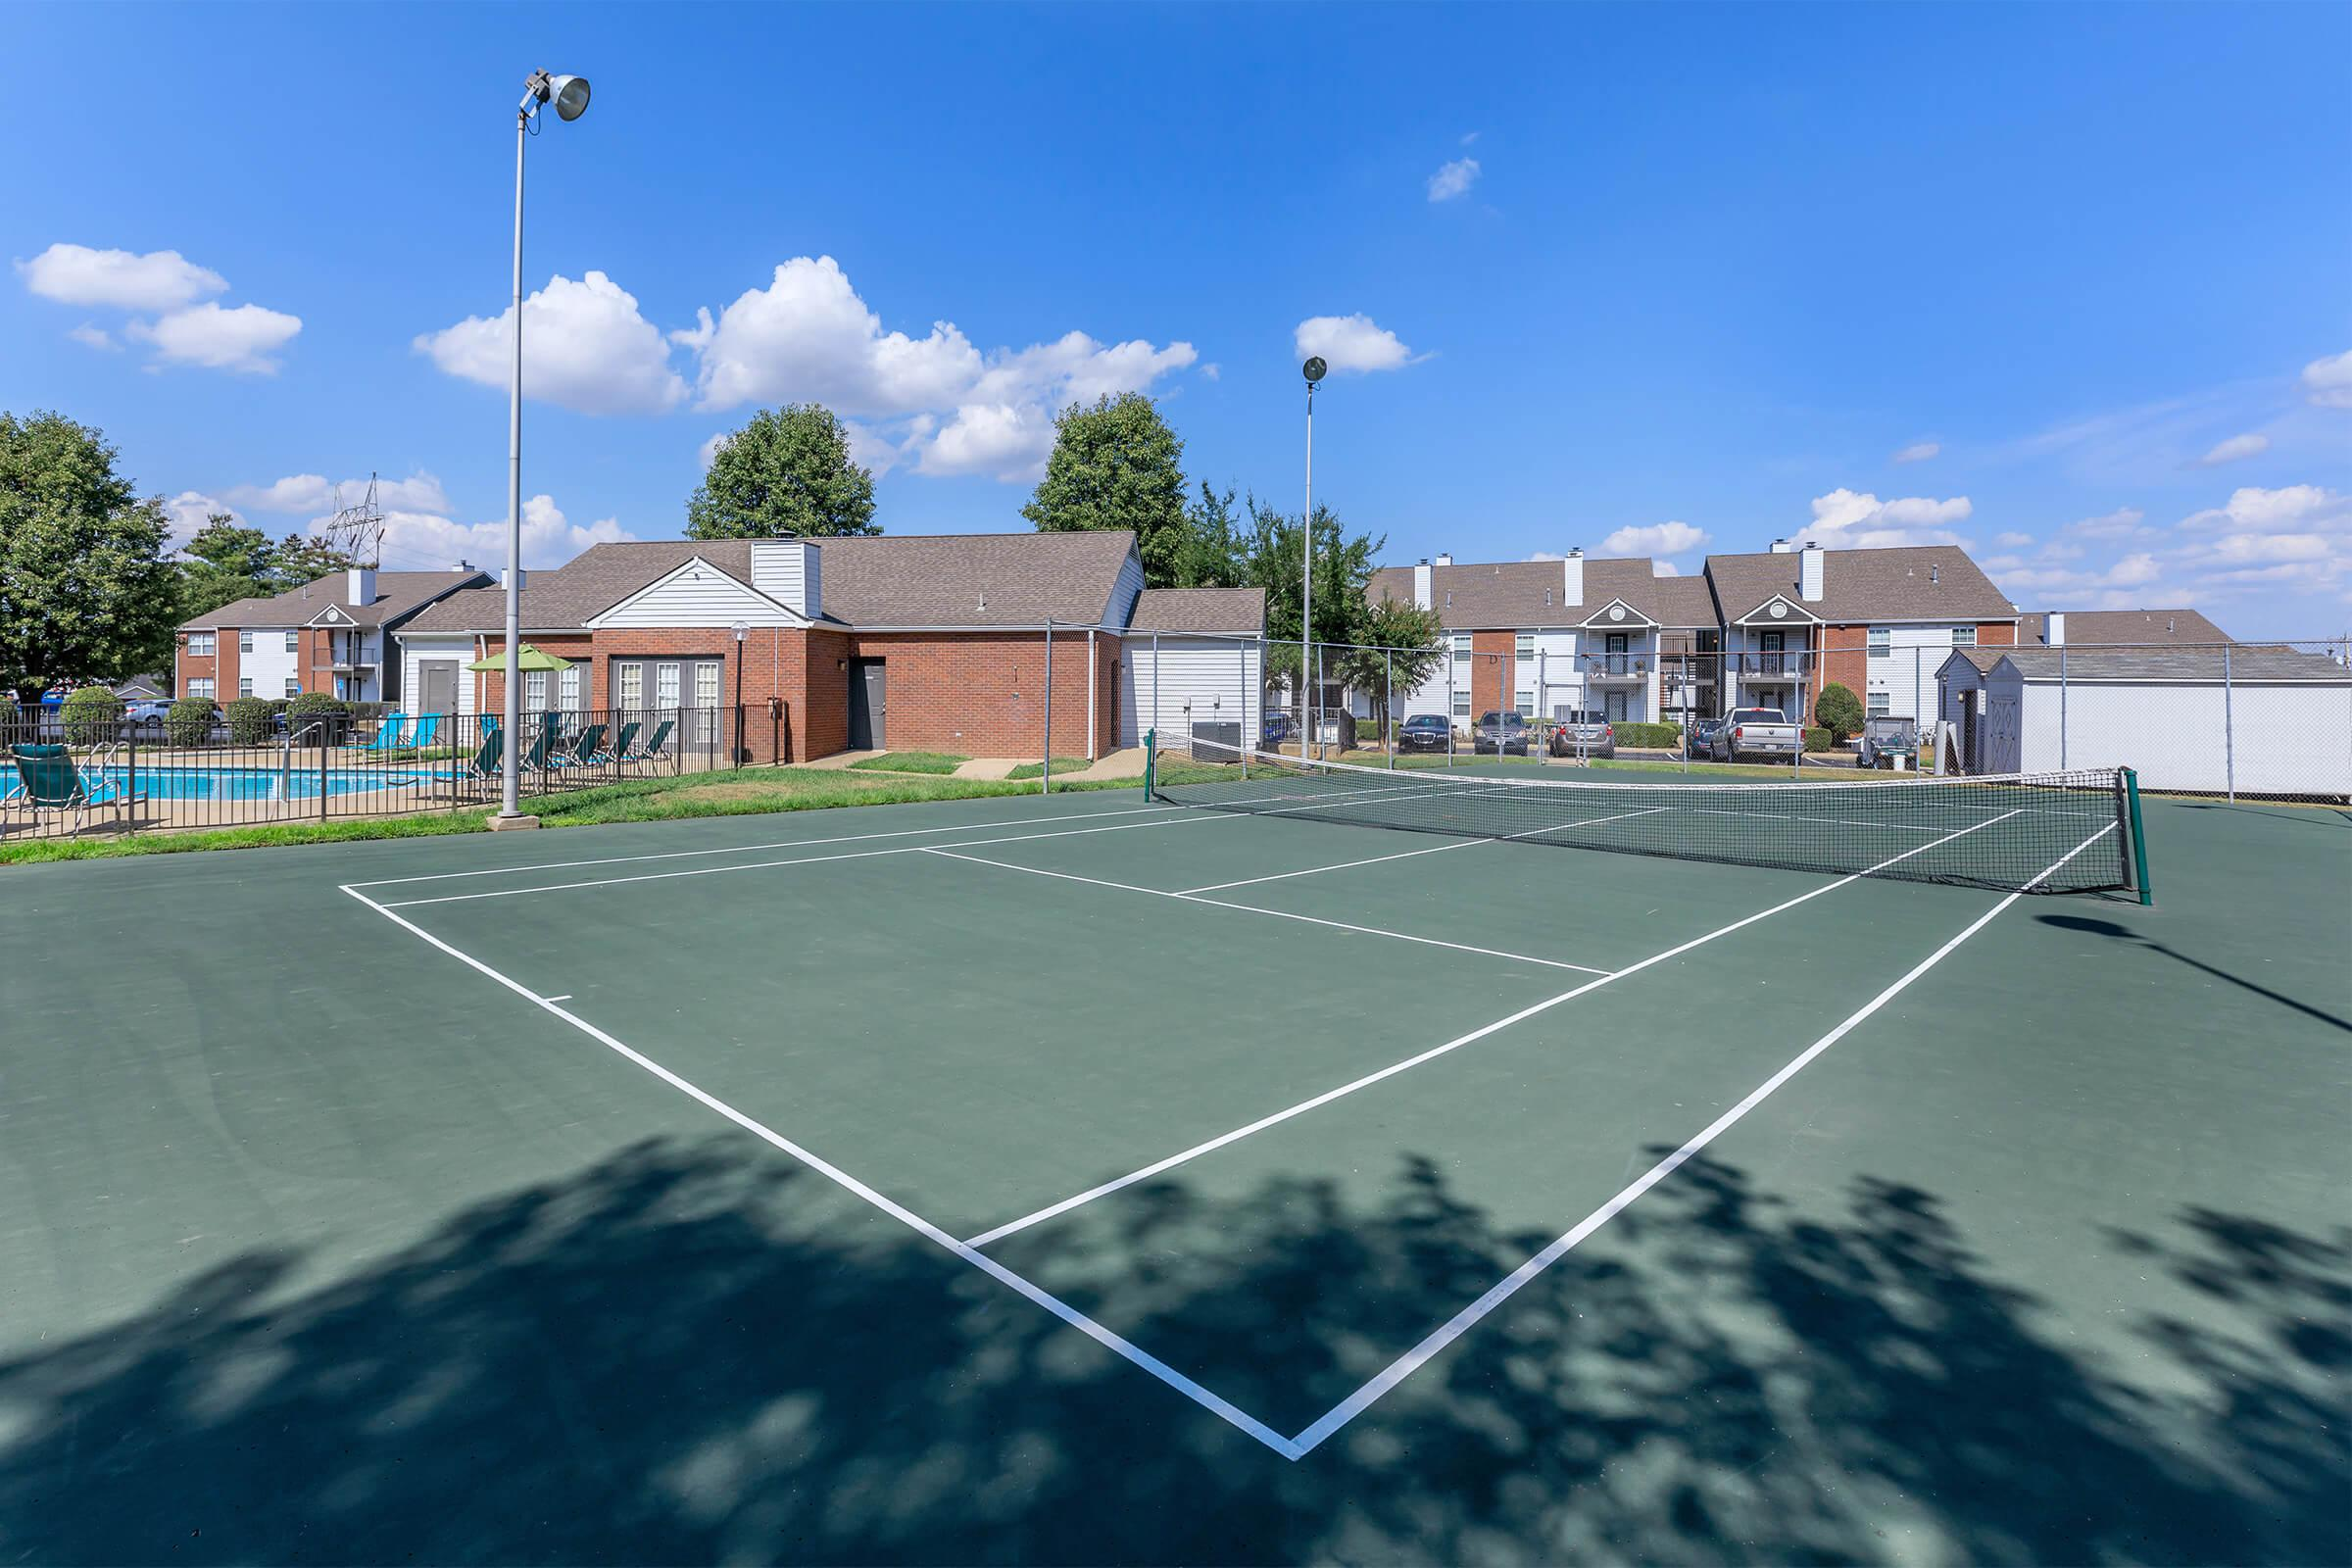 Tennis anyone? Graymere in Columbia, Tennessee